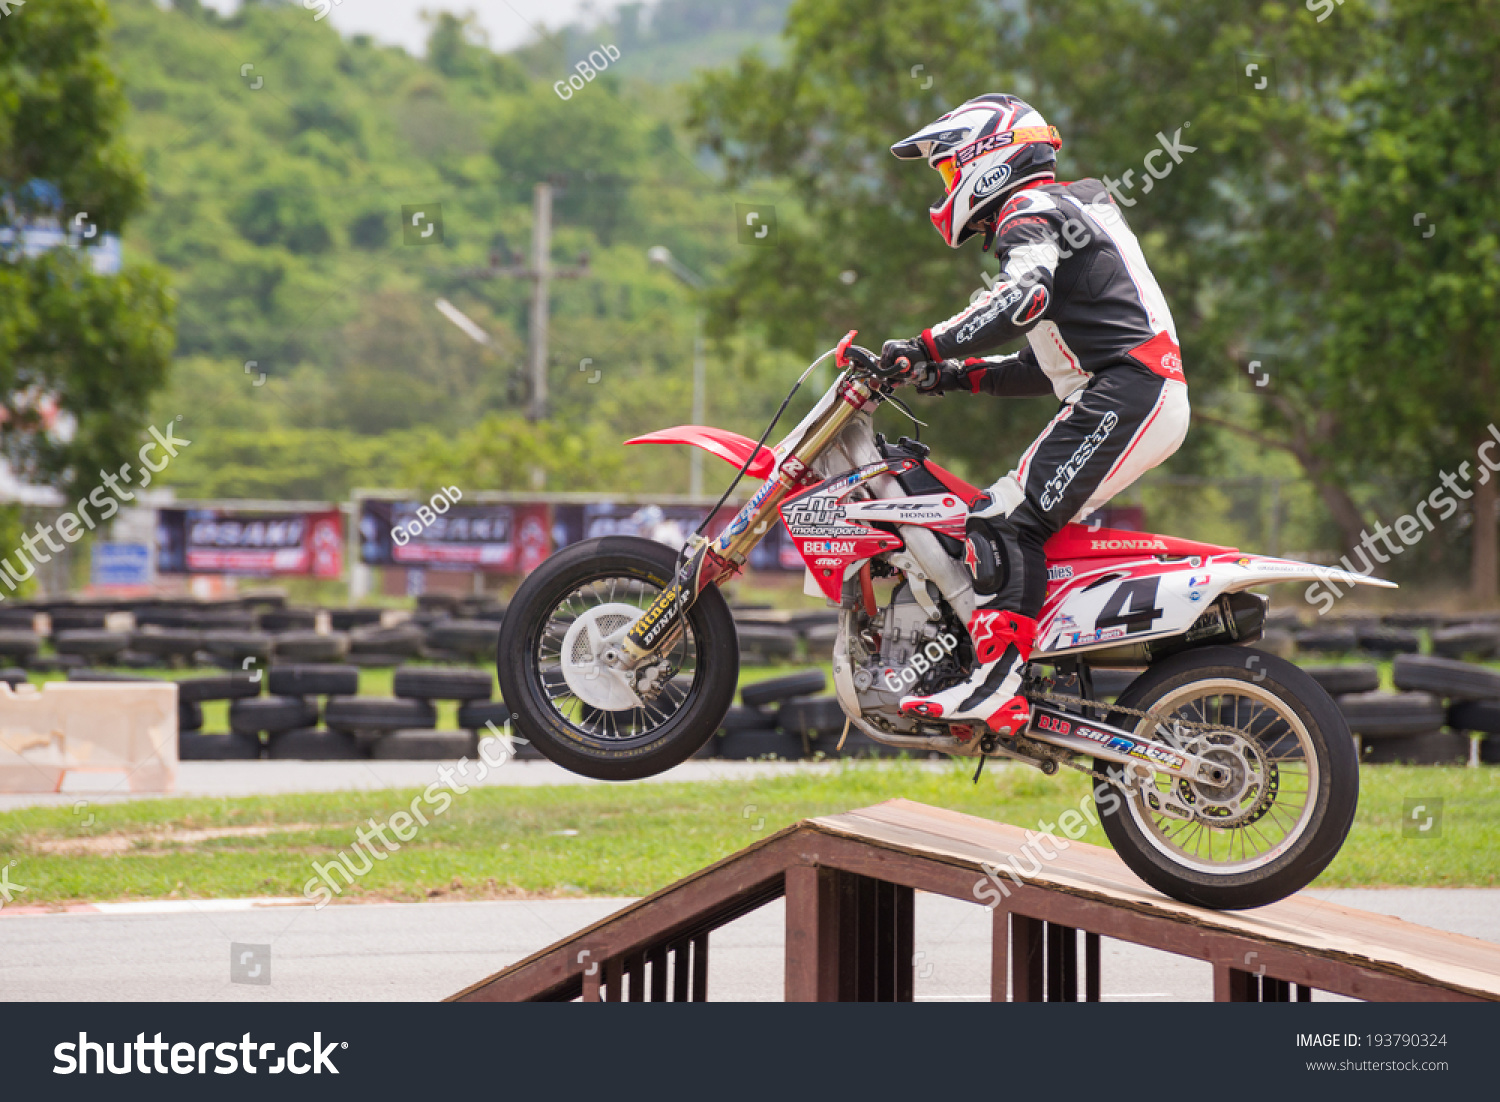 Chonburi May 102014 Unidentified Racers Honda Stock Photo Edit Now 2015 Dirt Bikes 250cc Crf 250 In Super Moto 2014